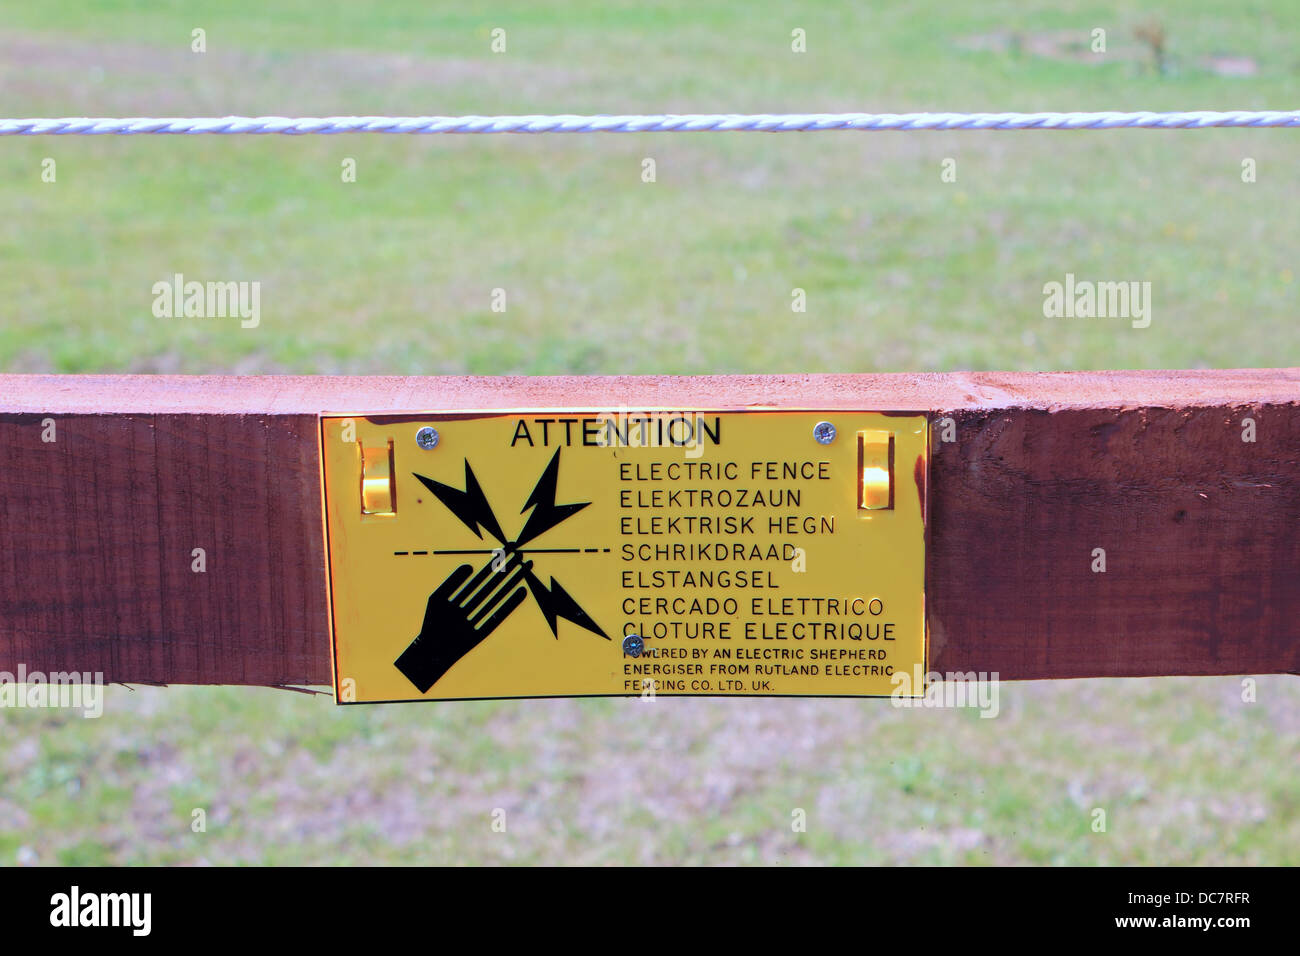 Attention electric fence sign in many languages. UK - Stock Image